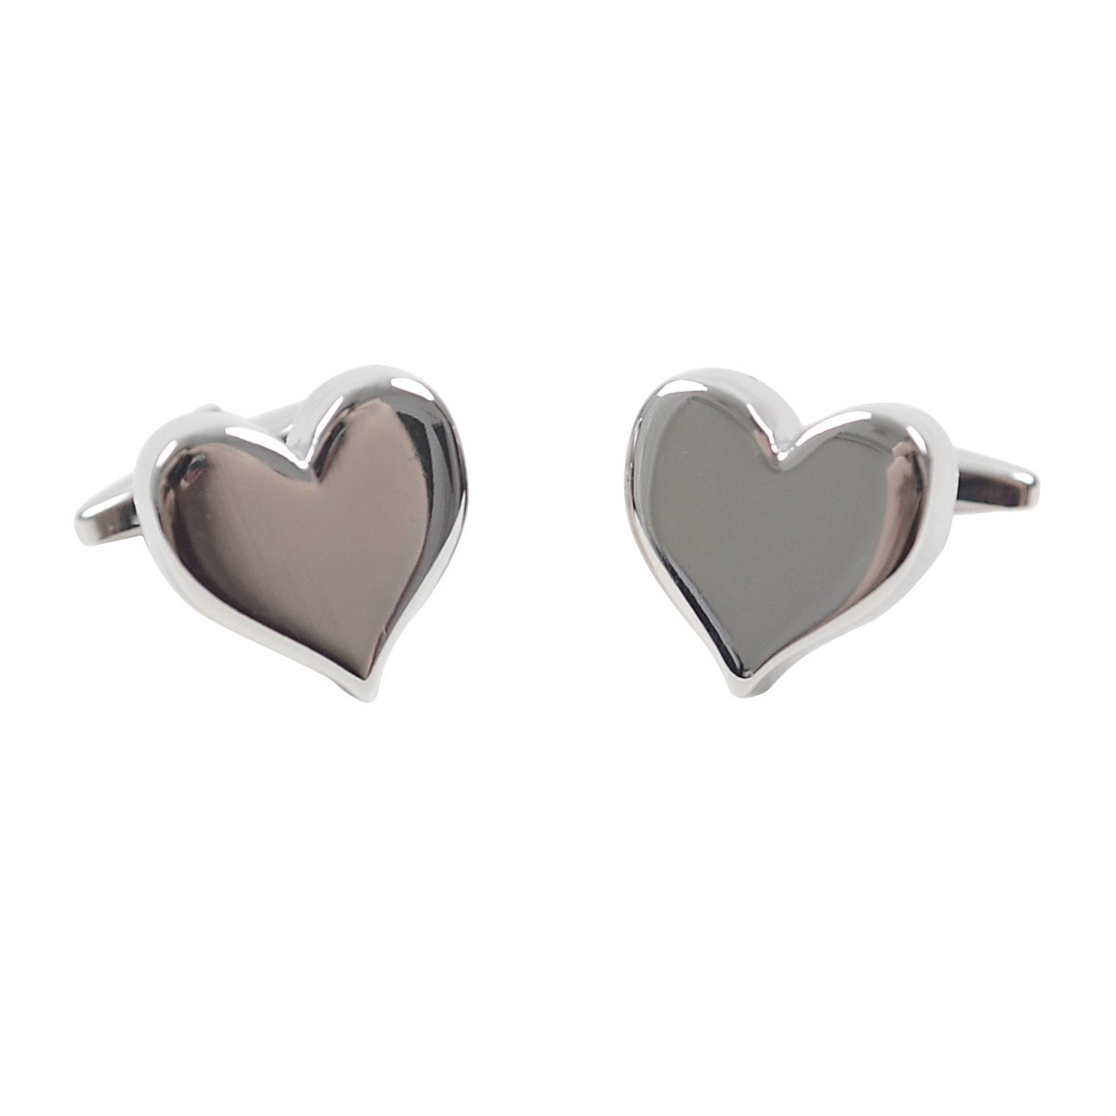 Silver Love Heart Novelty Cufflink - orangeshine.com